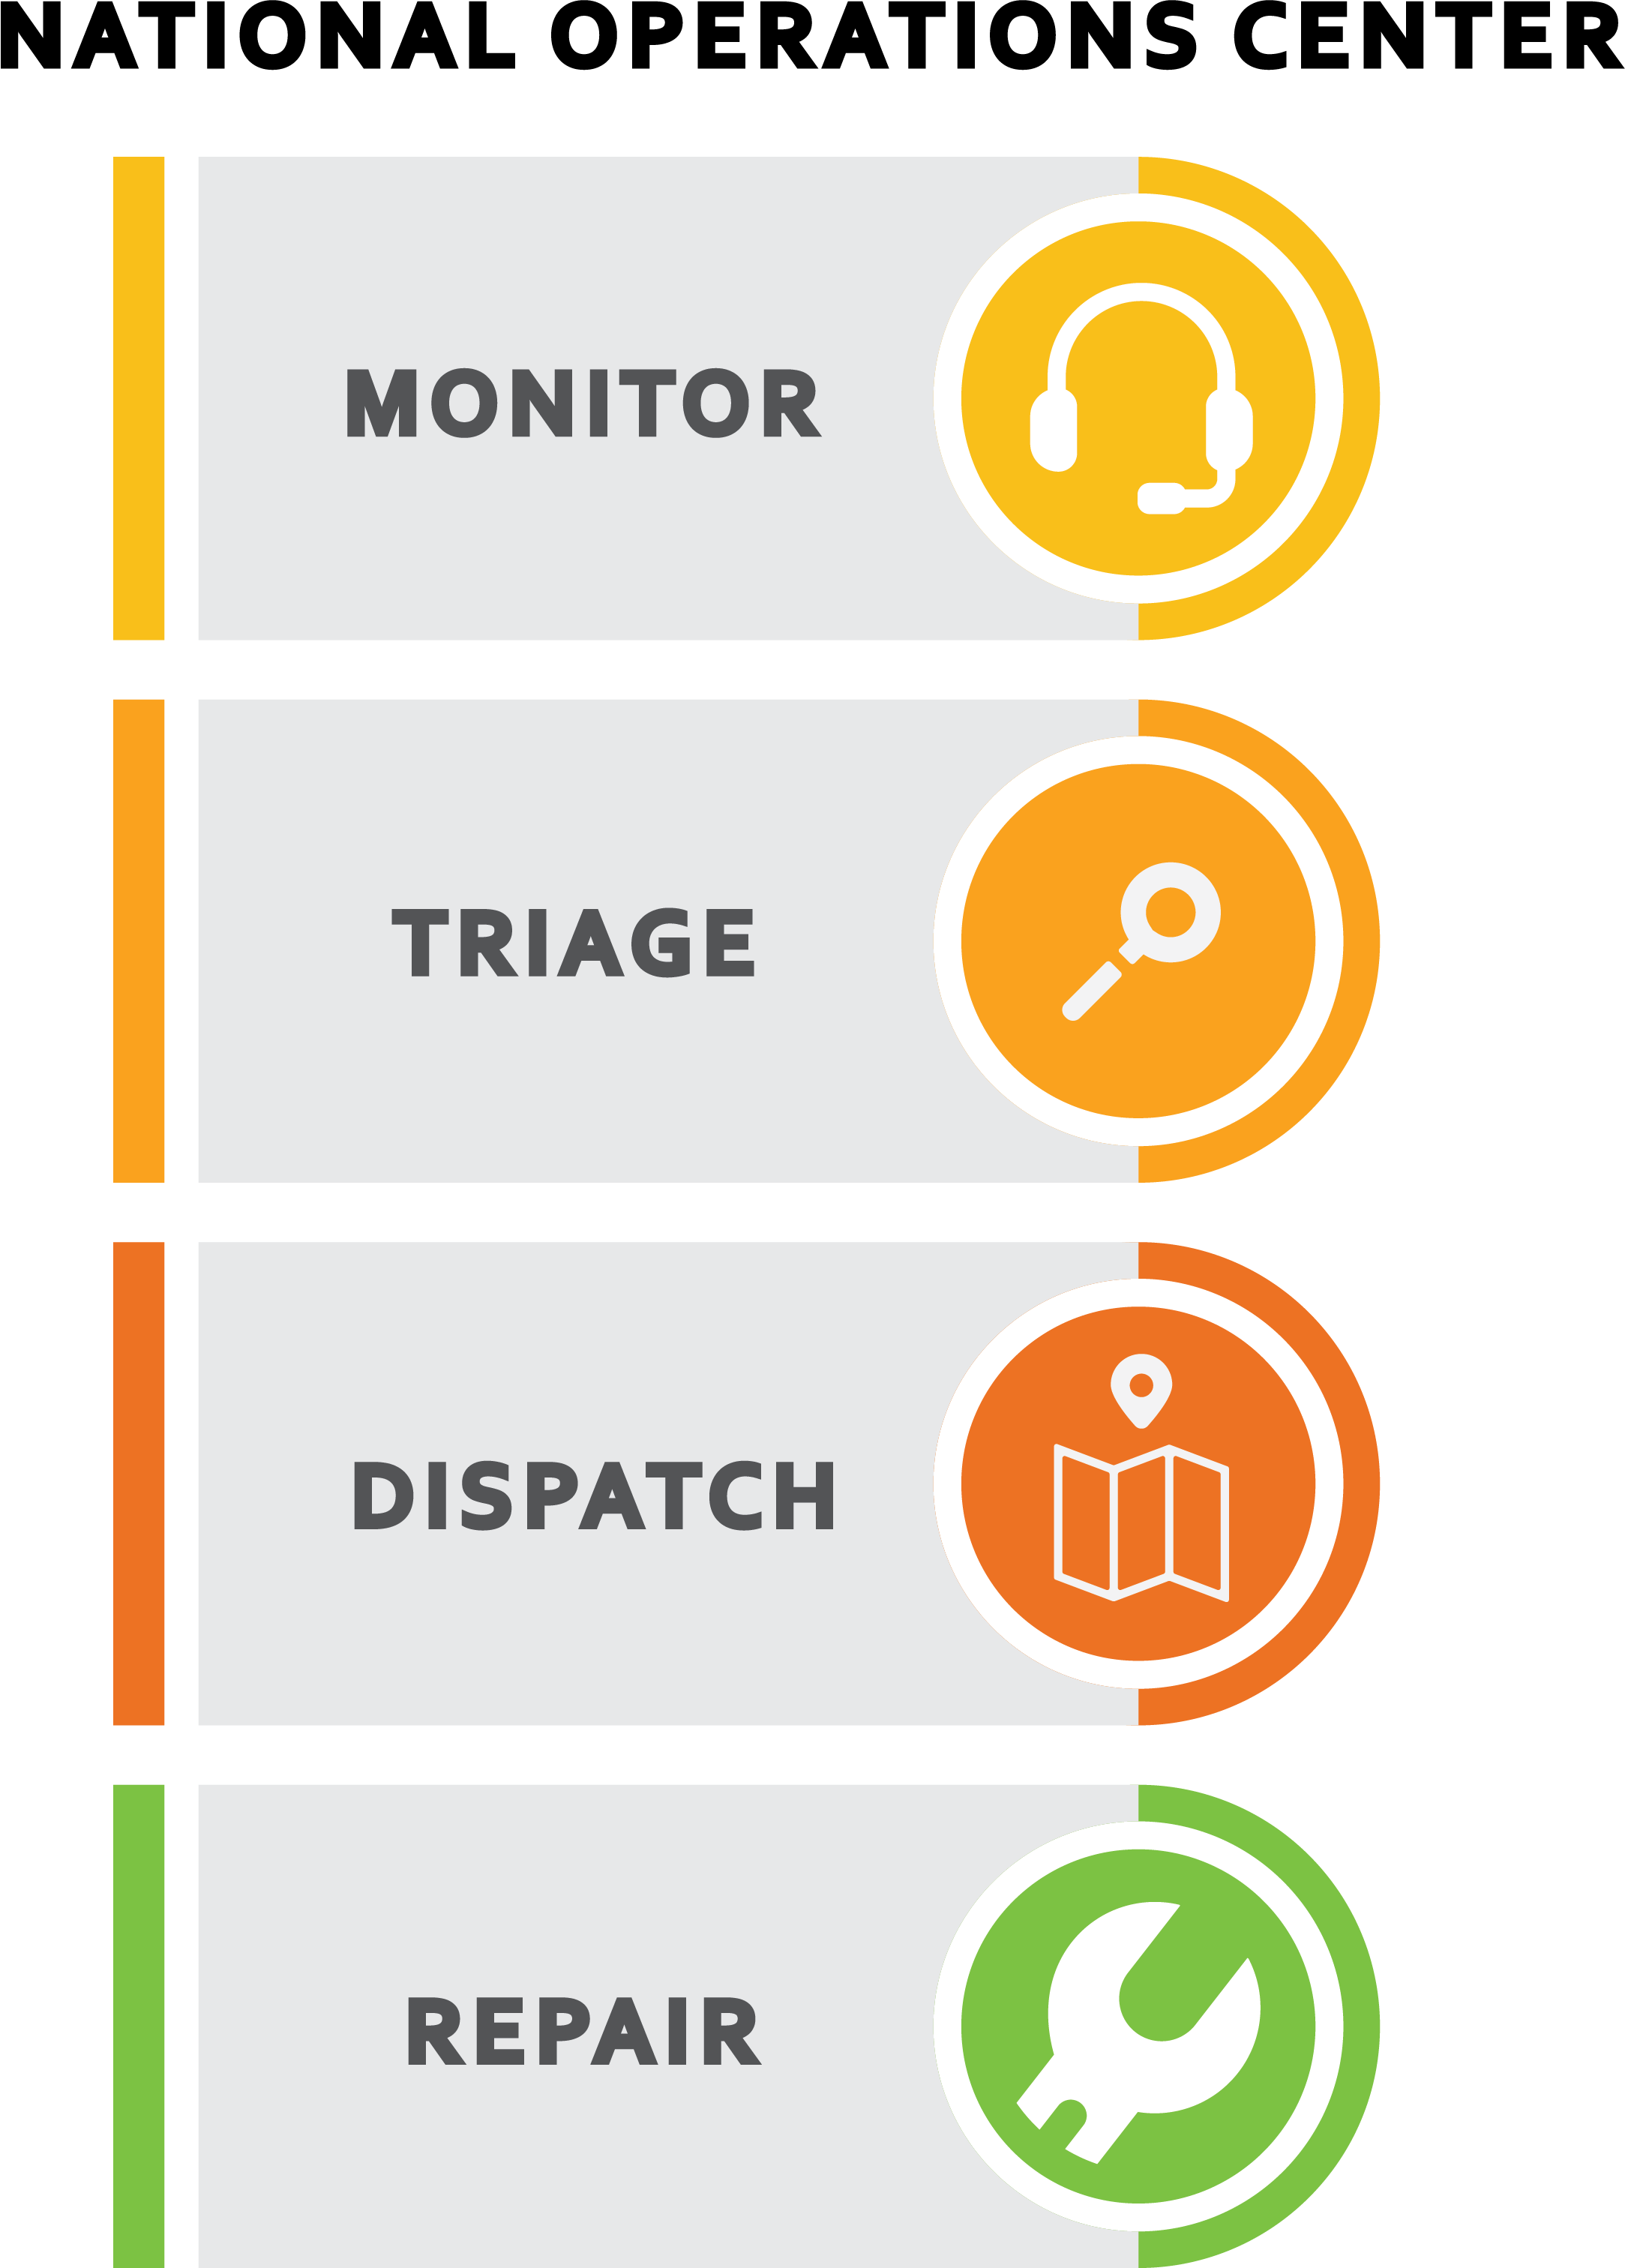 NOC monitoring services